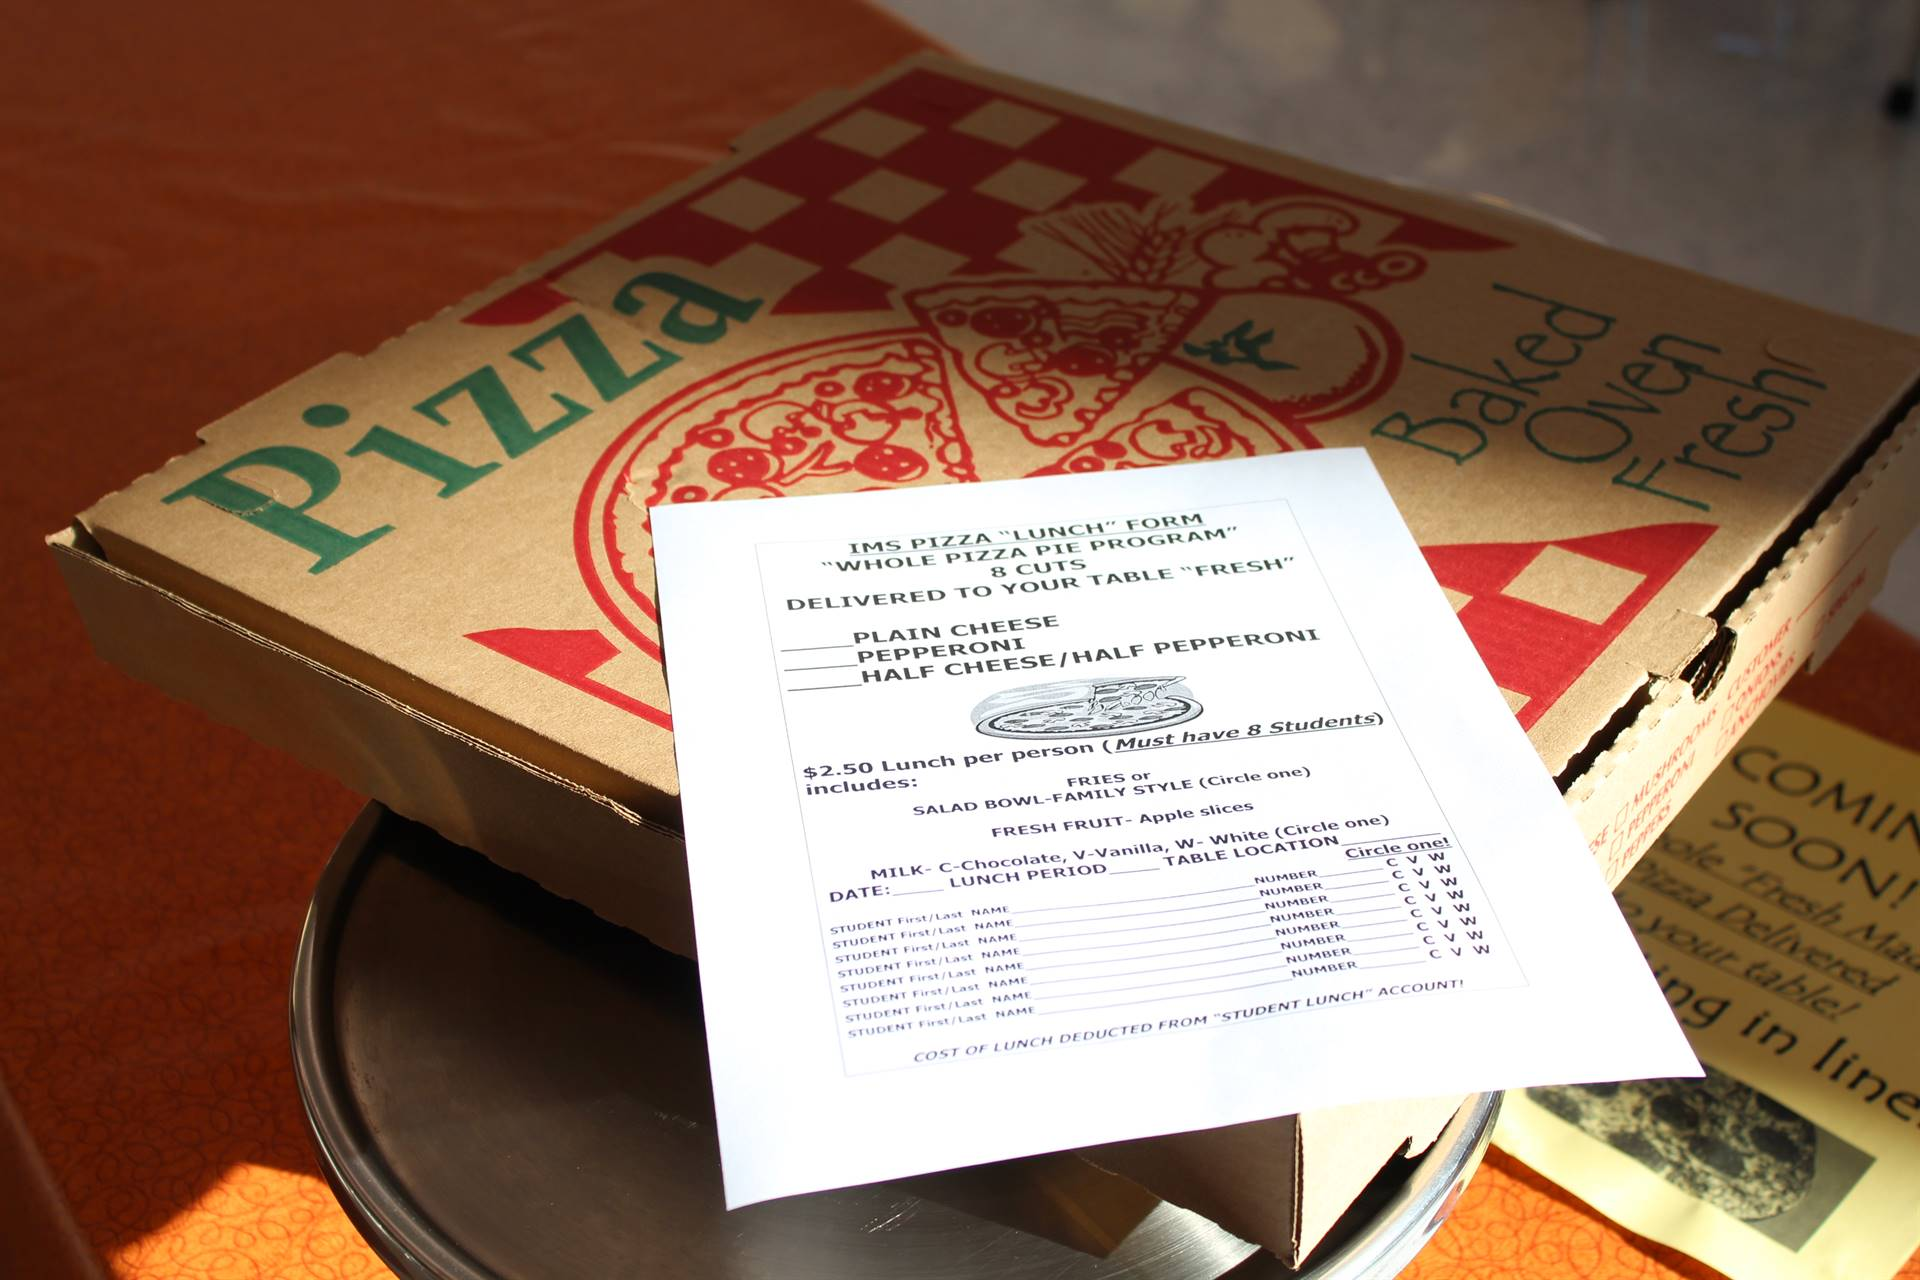 The Whole Pizza Program order form